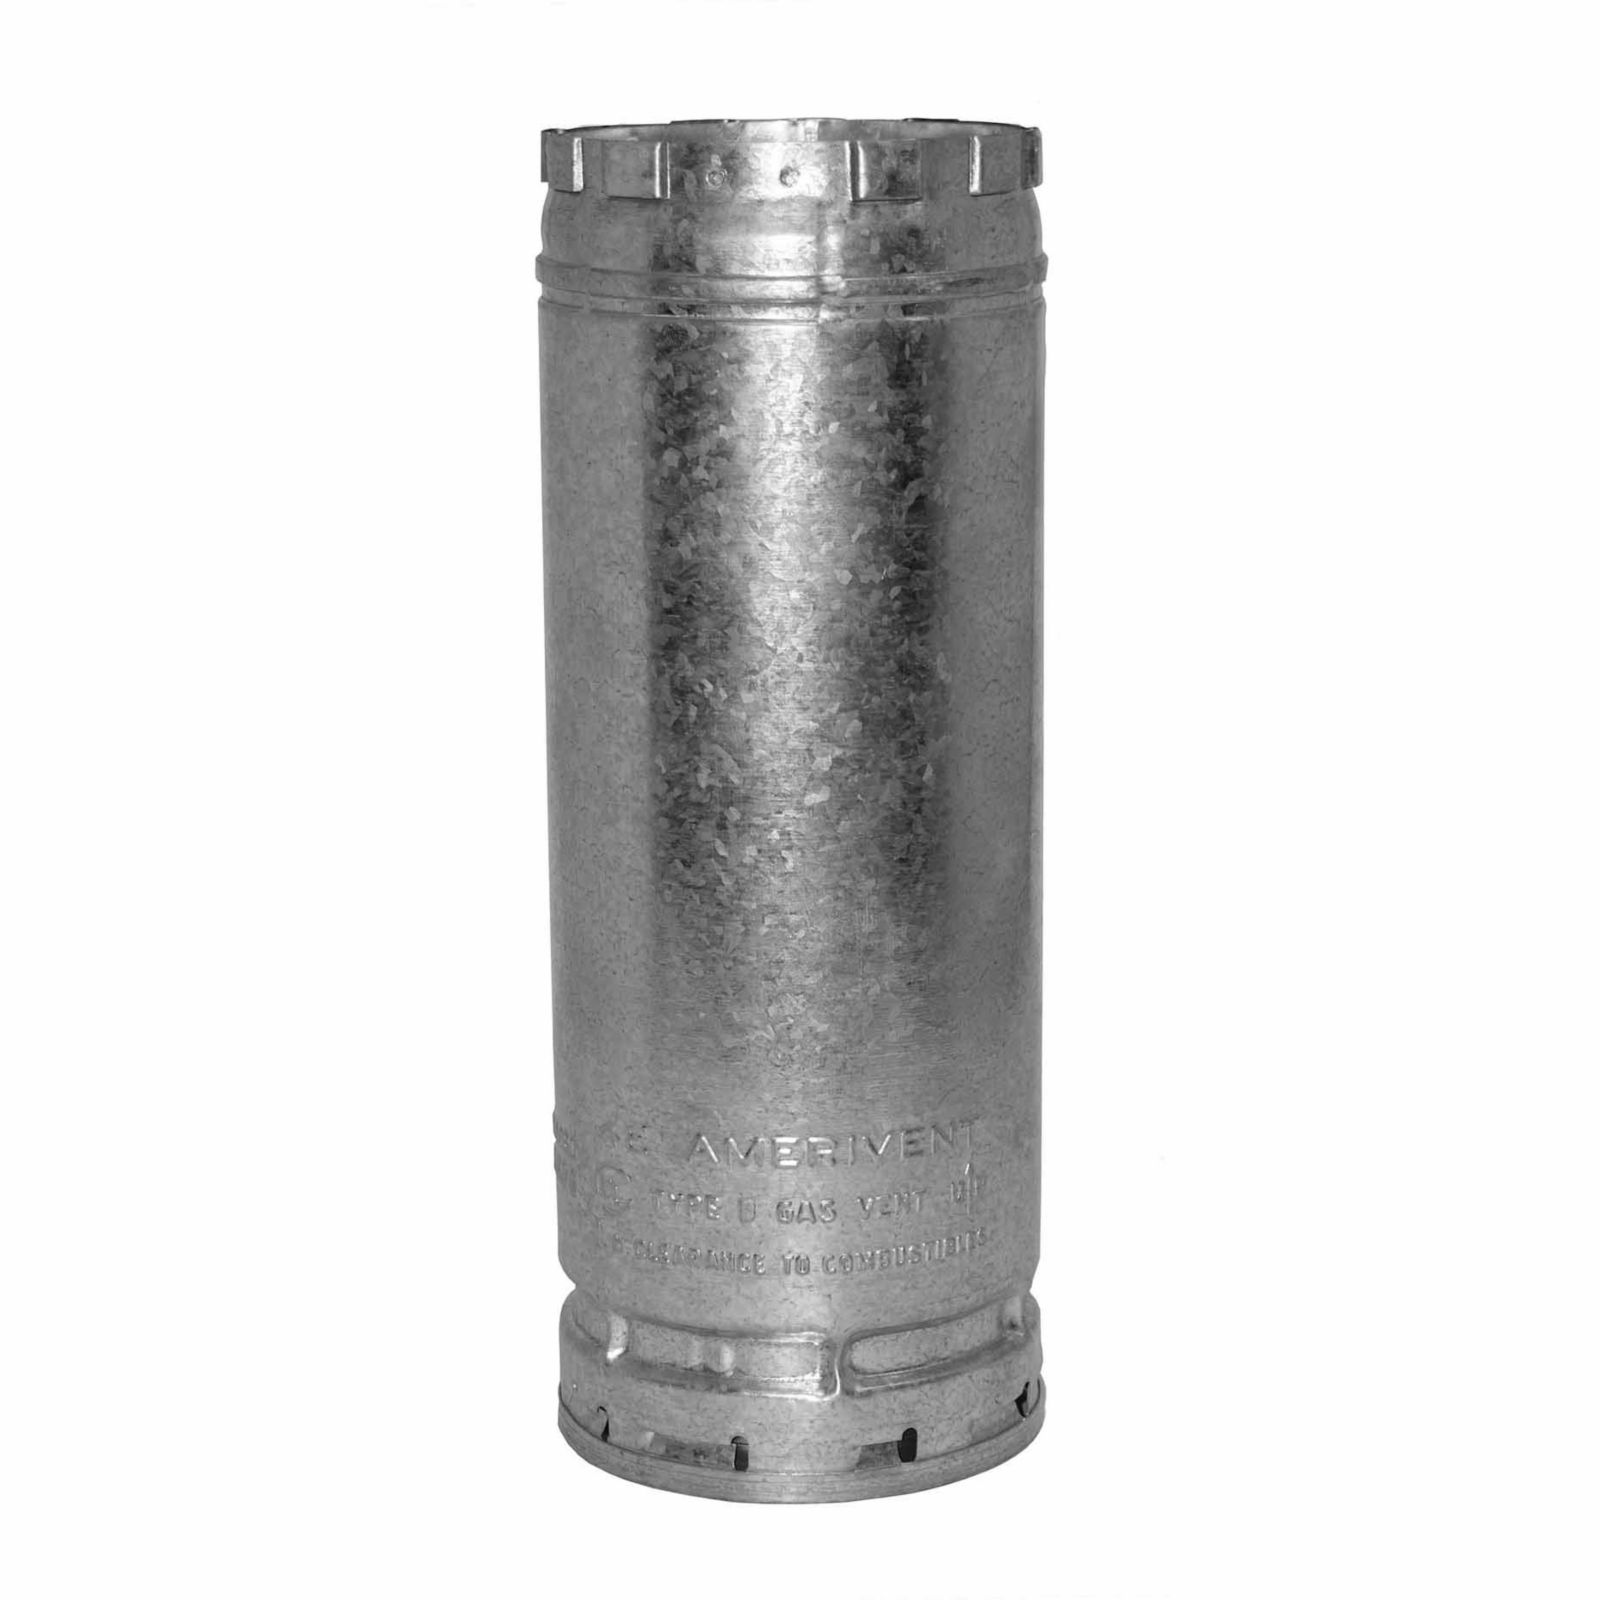 "AmeriVent 5E12 - Pipe Section Type B Gas Vent, 5"" Round X 12"" Length"